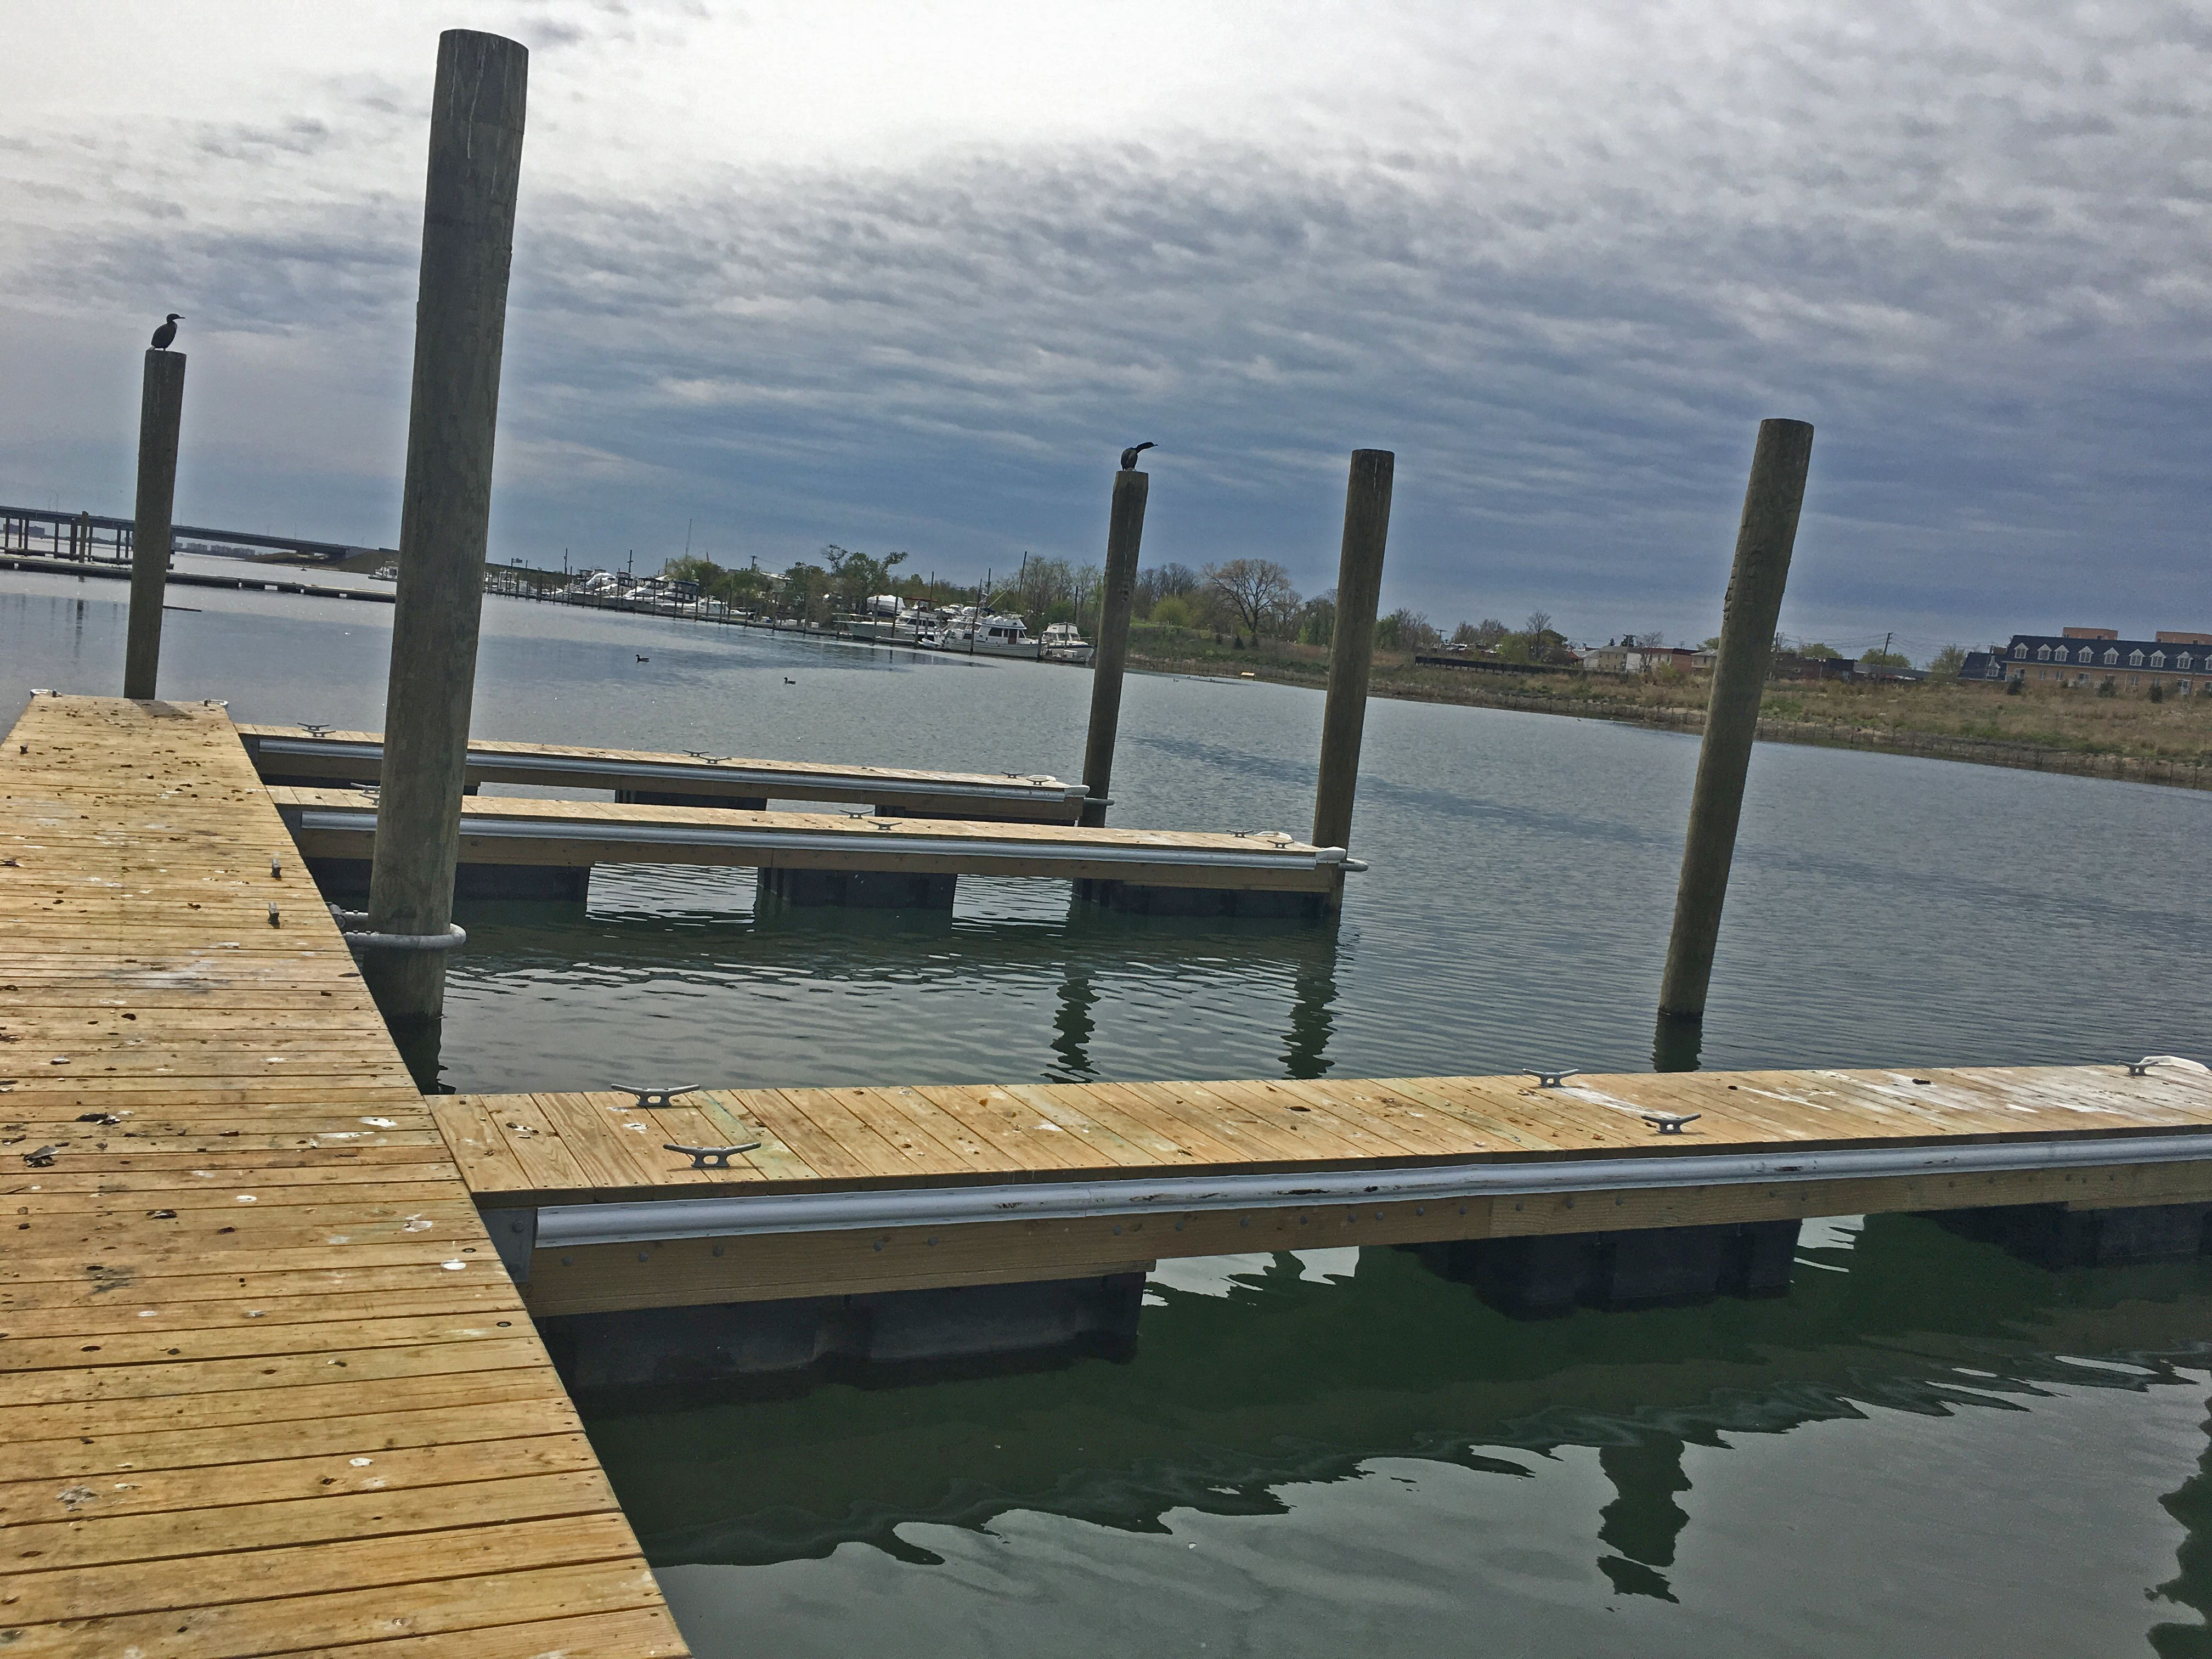 Here is a view of H2M's replacement docks from the Paerdegat Basin Project!